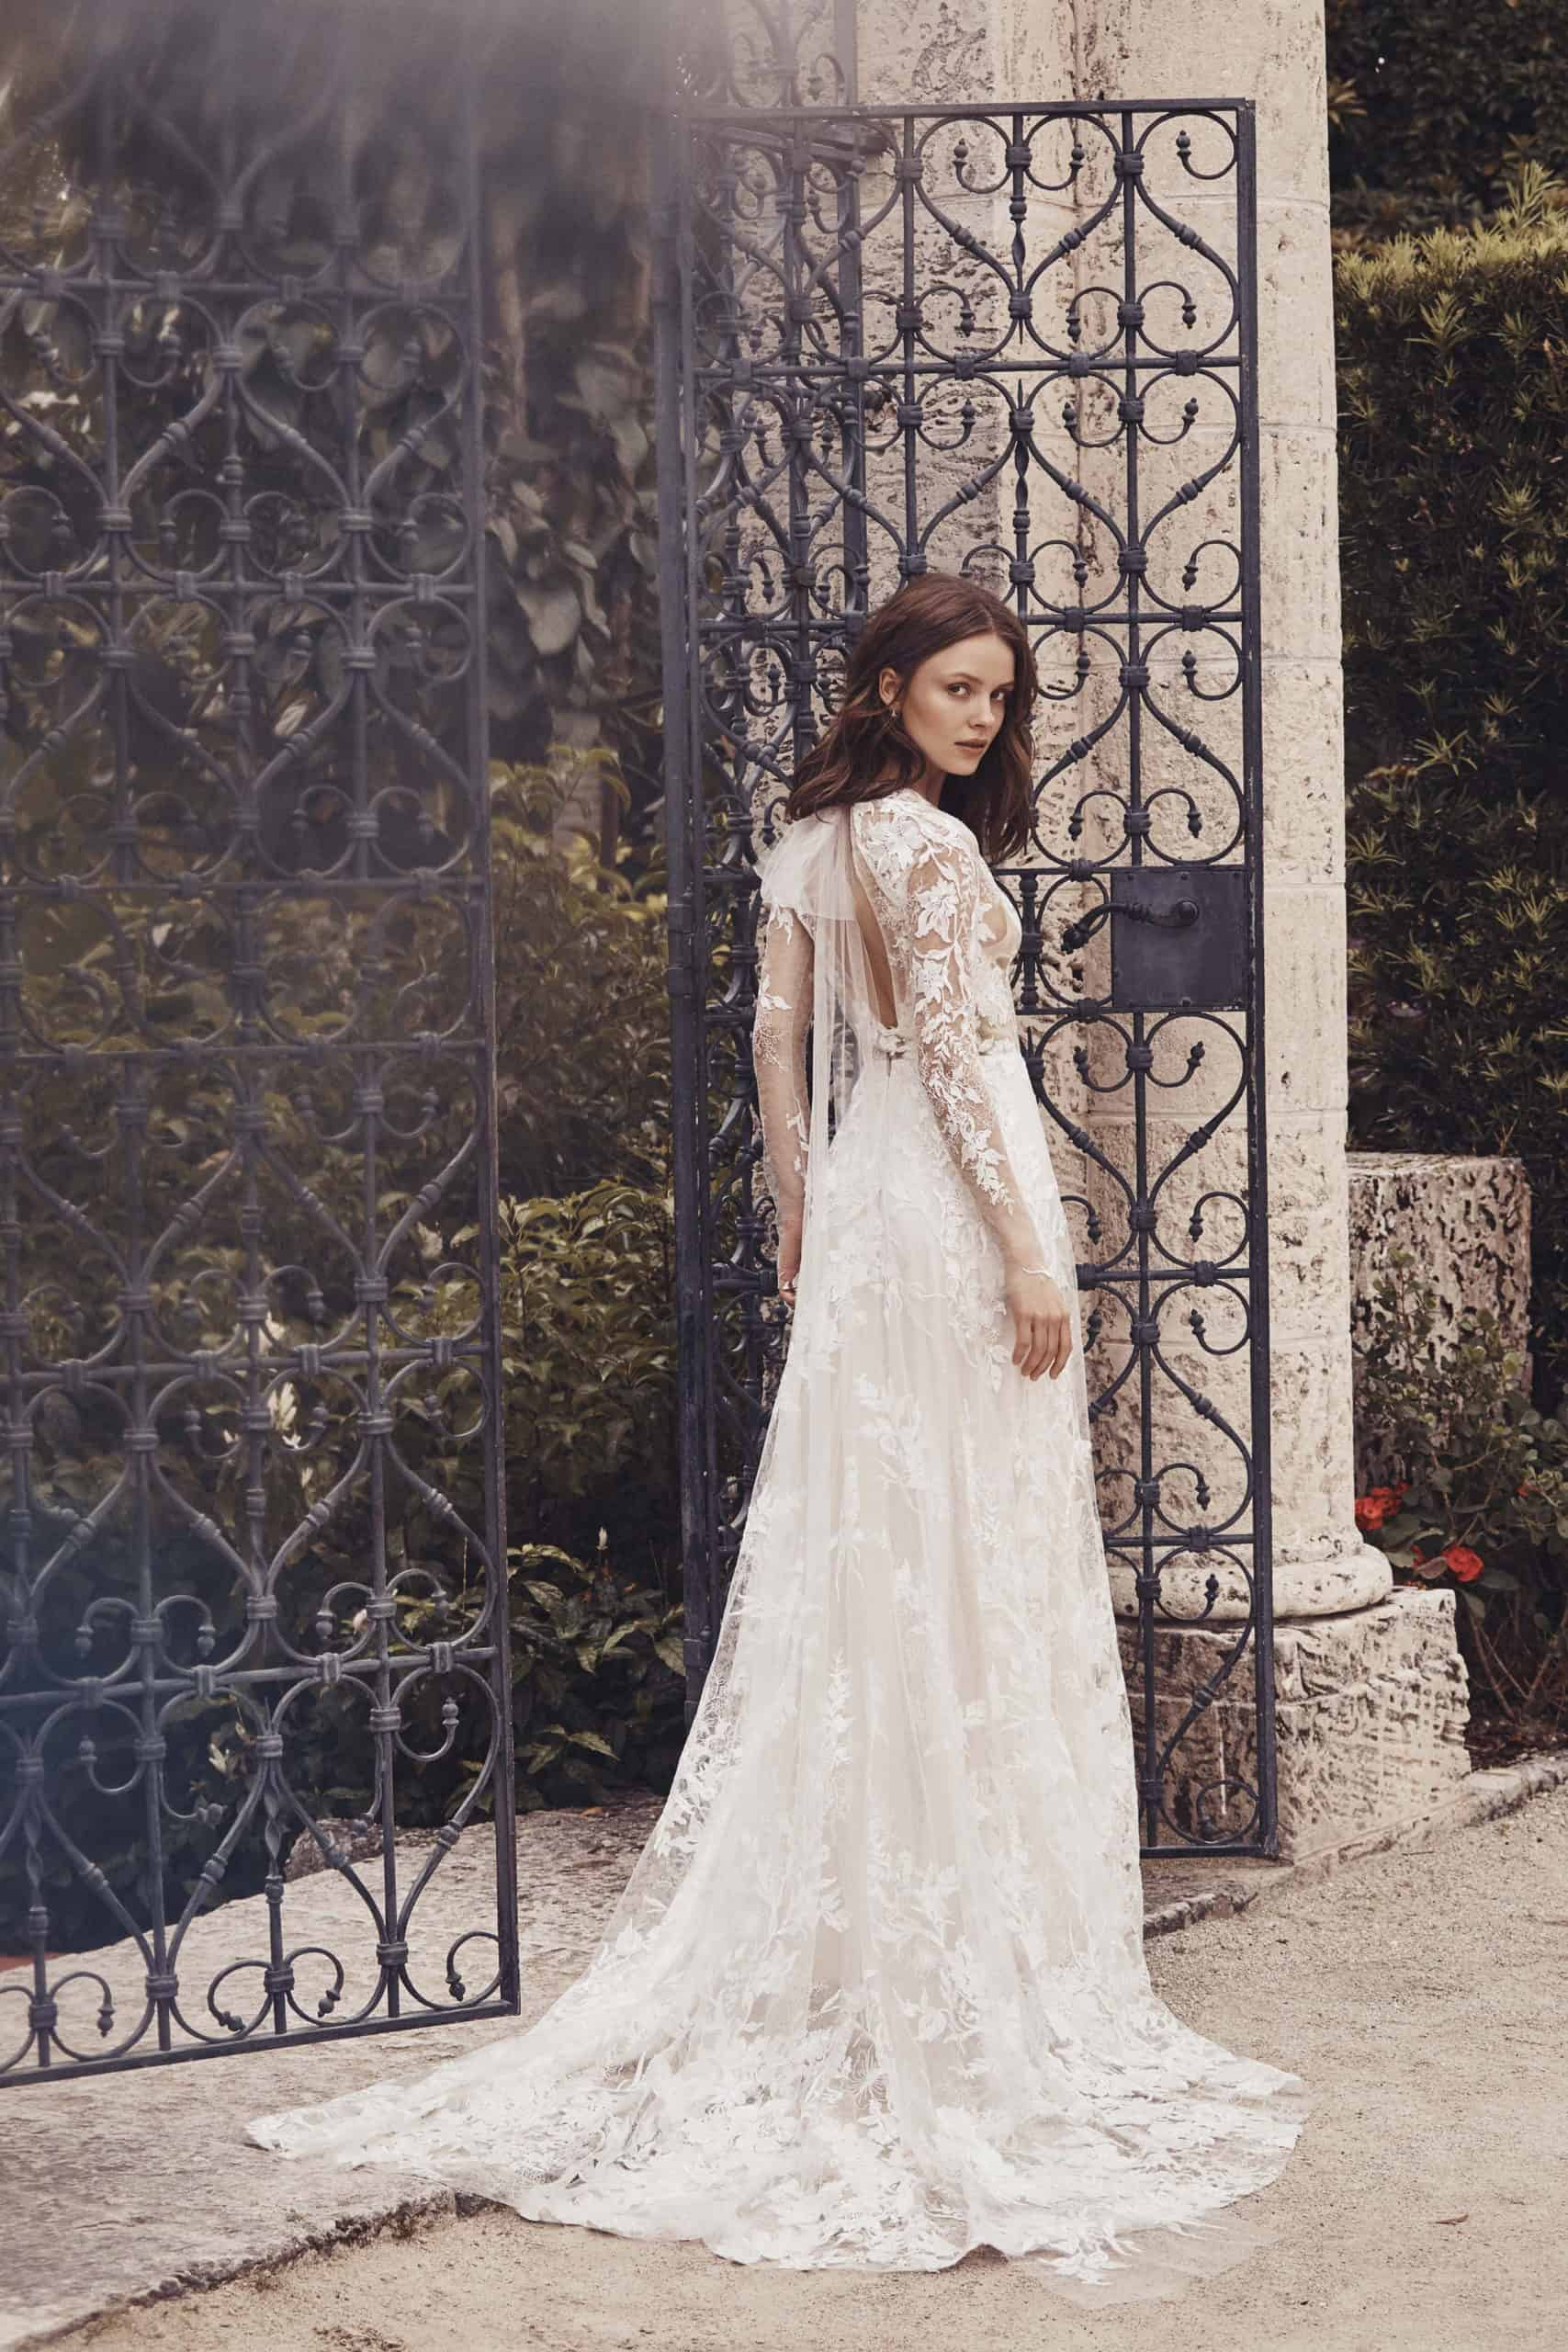 a laced wedding dress with long lace sleeves by Monique Lhuillier